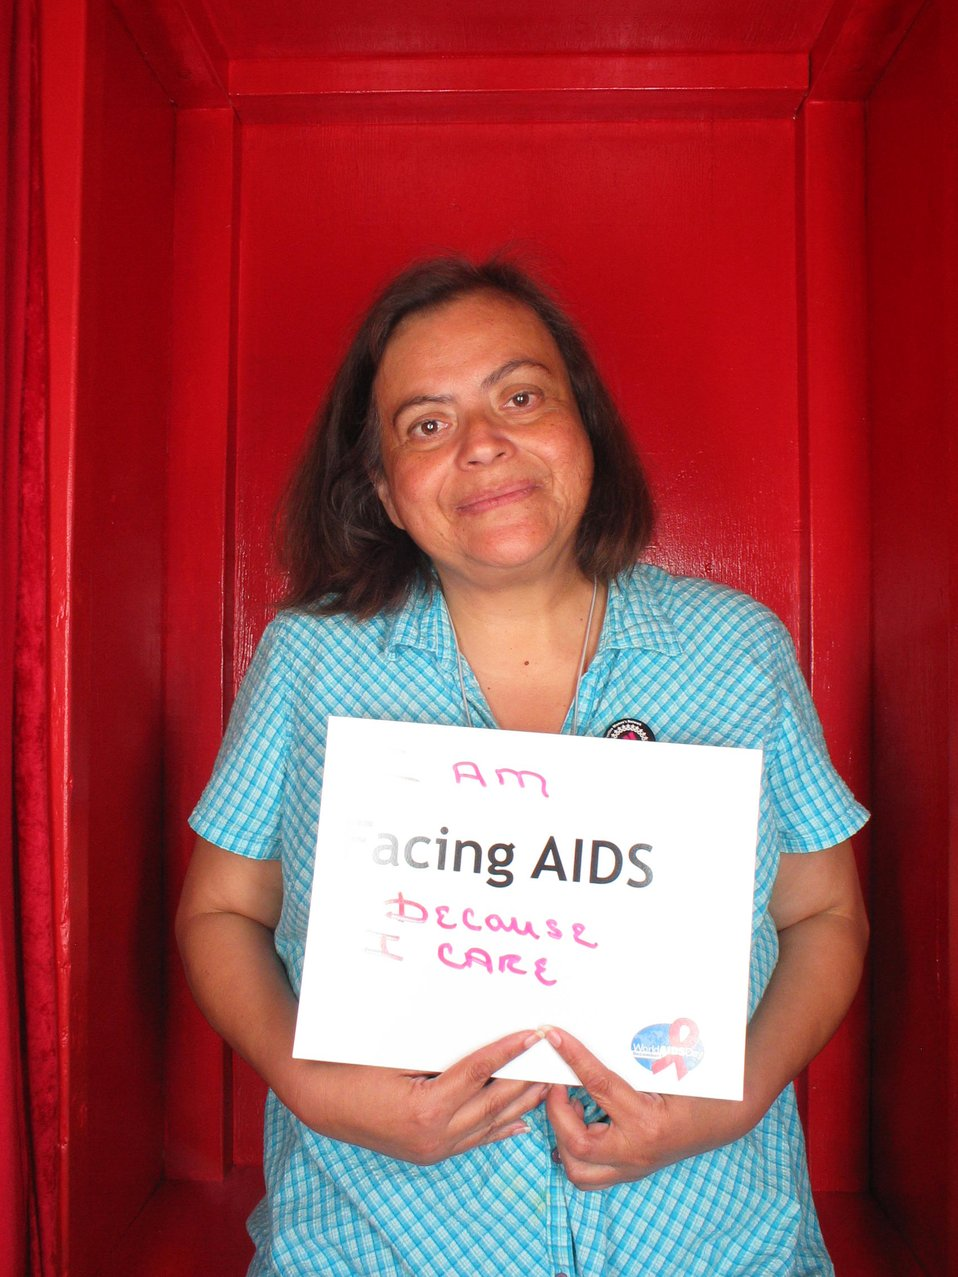 I am Facing AIDS because I care.